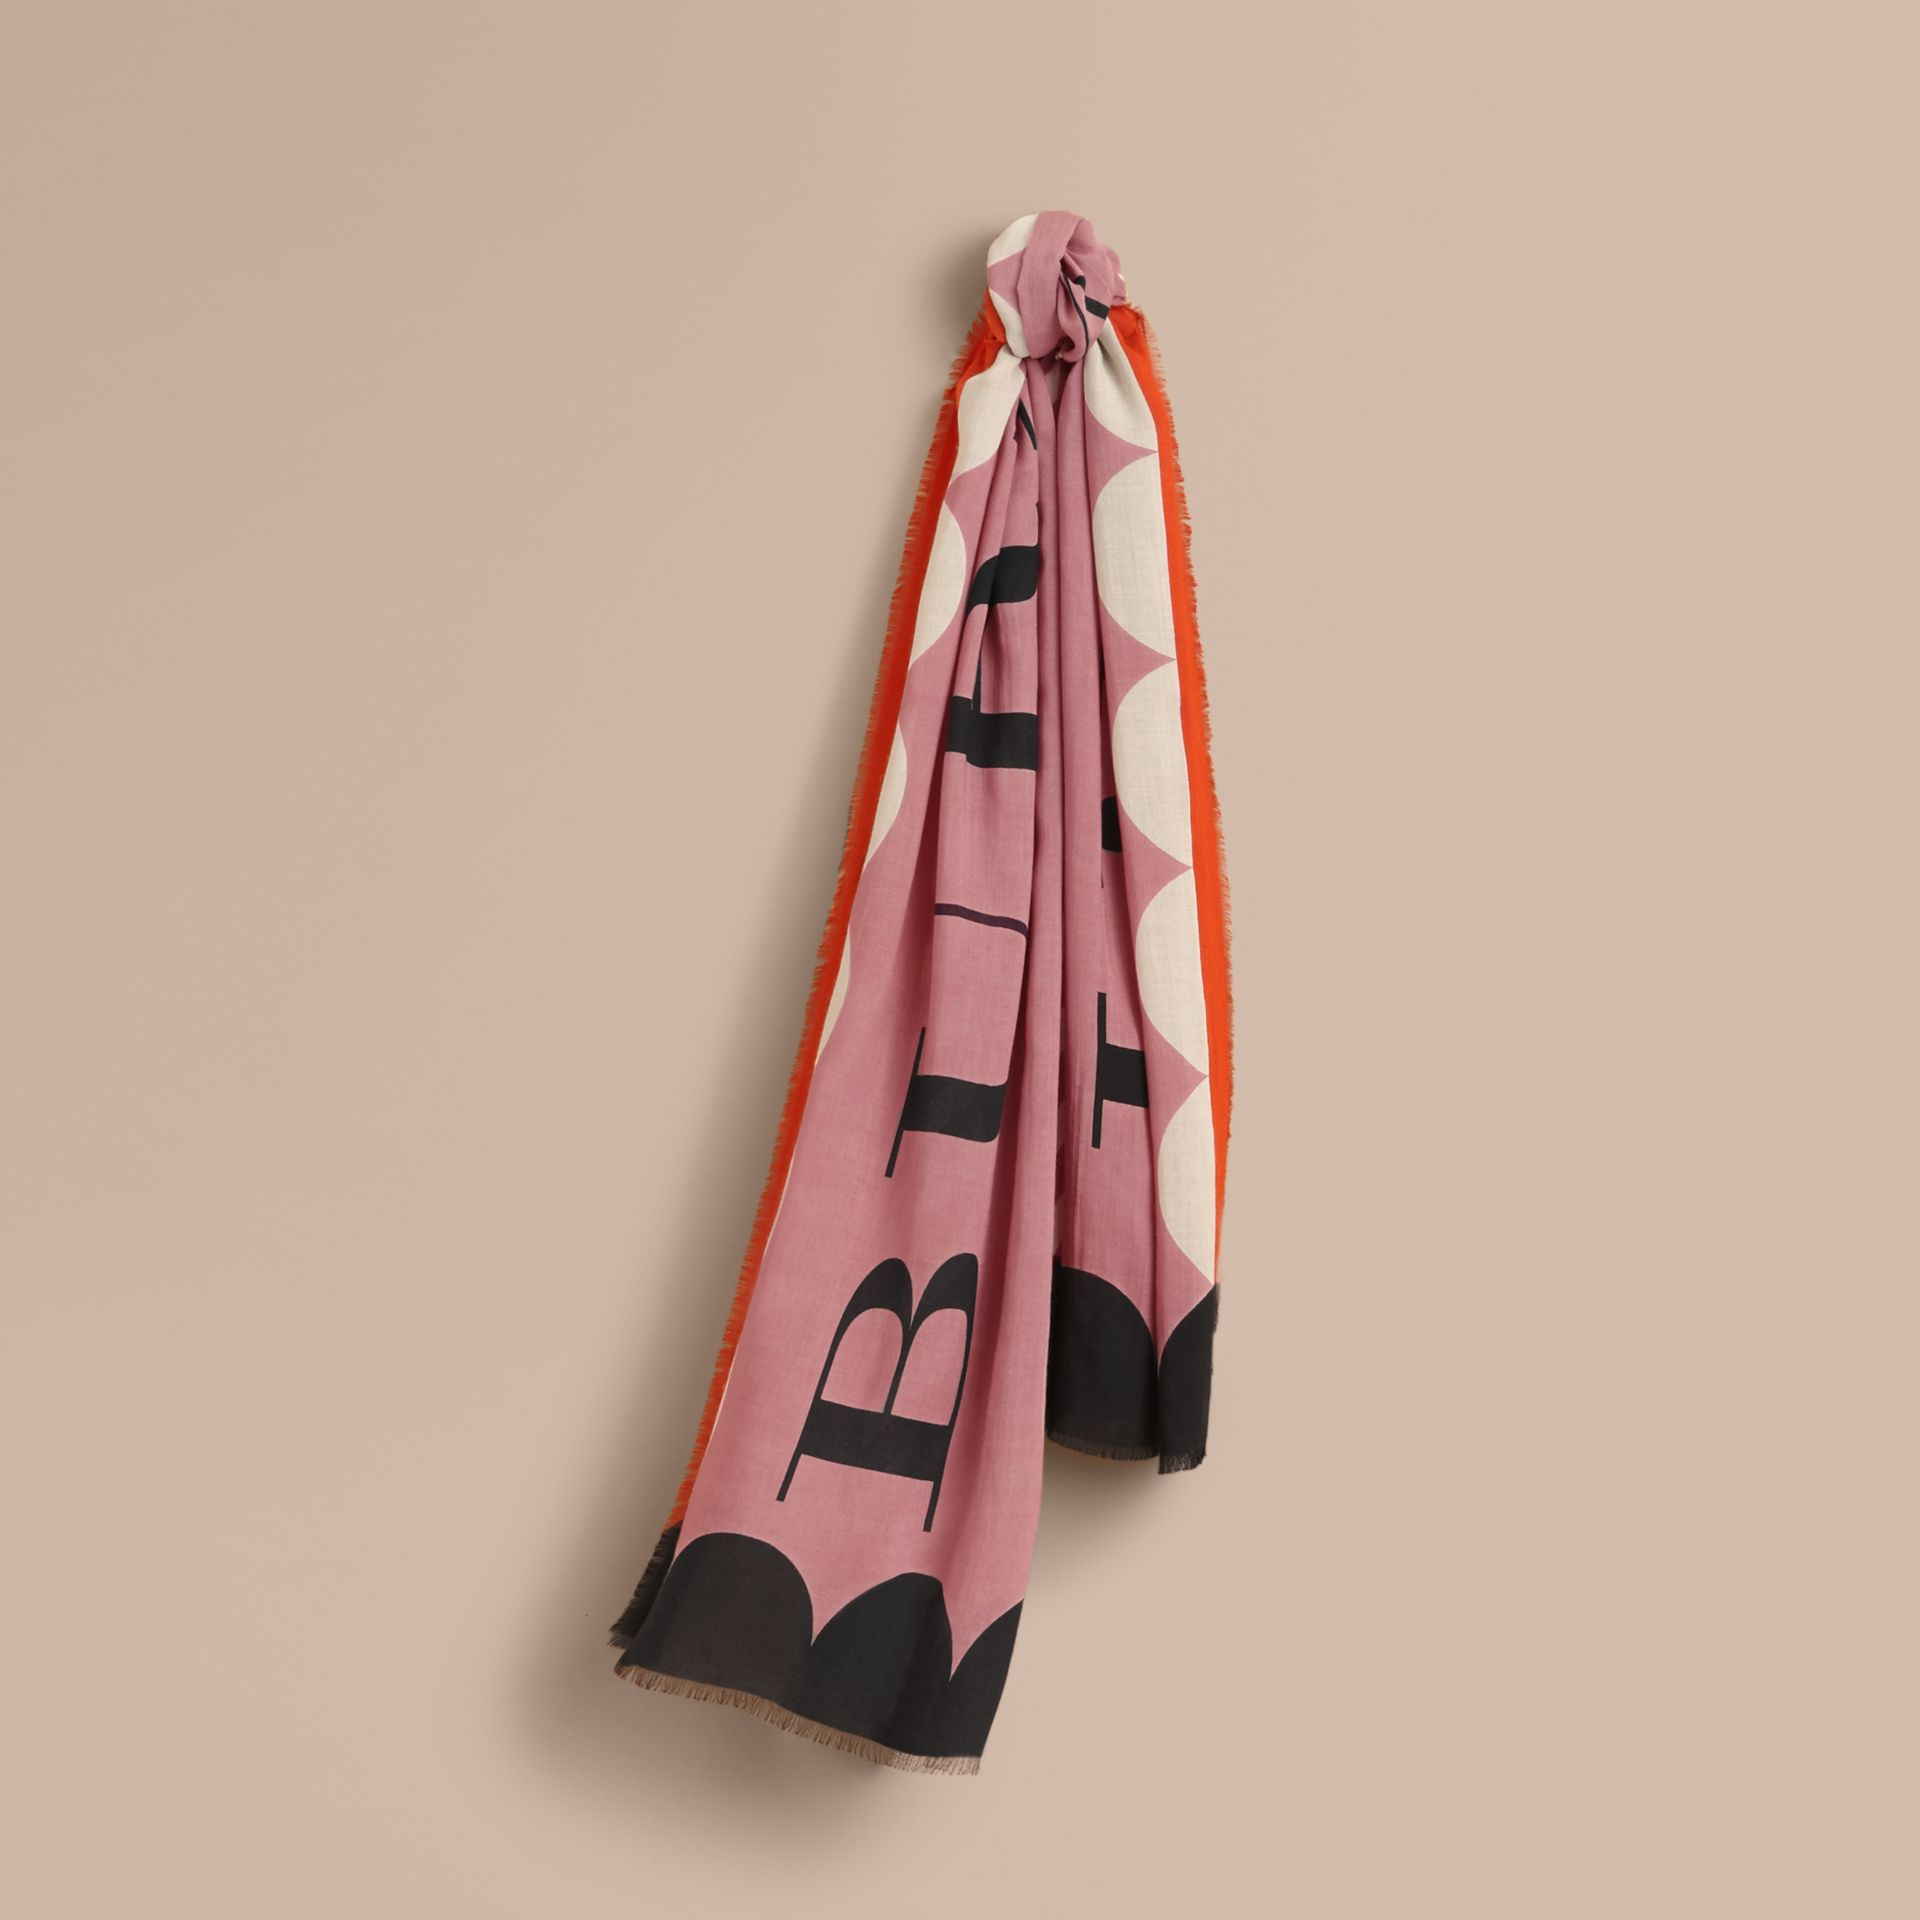 Scallop and Stripe Print Modal Wool Scarf in Dusty Pink - Women | Burberry - gallery image 1